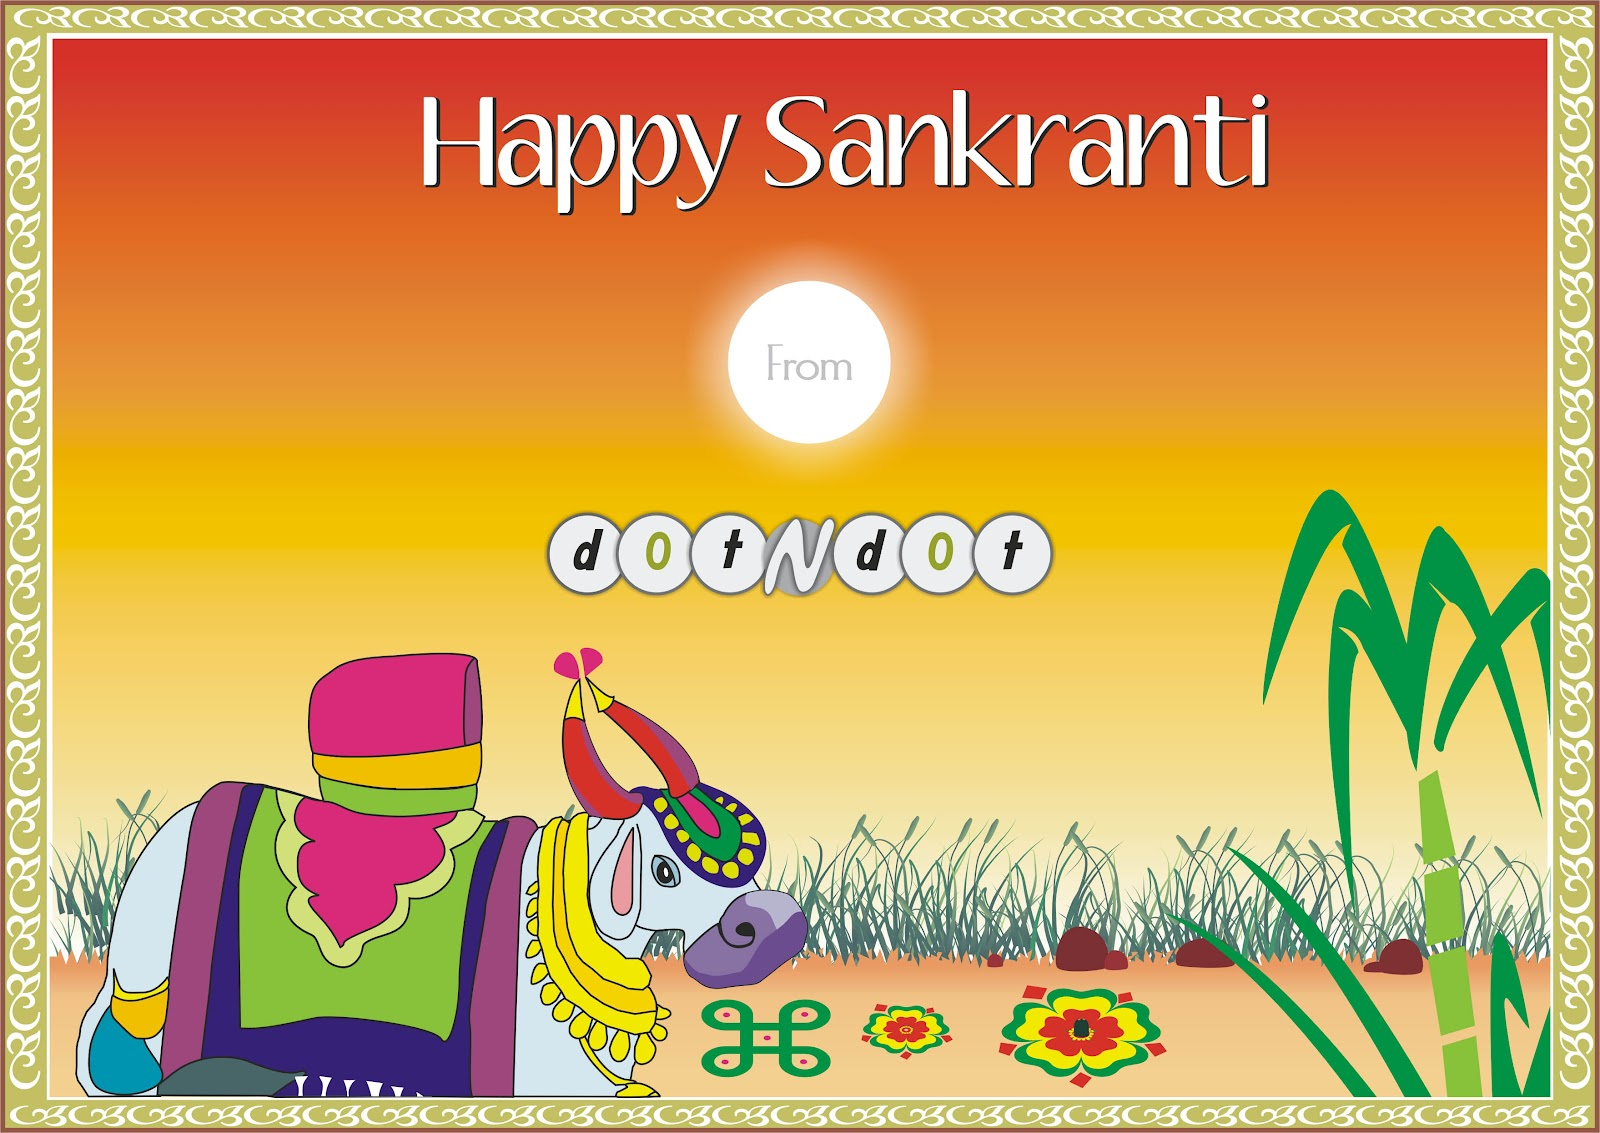 All in one wallpapers happy makar sankranti wishes greeting card happy makar sankranti greeting wallpapers httpall in onewallpapersfortollyto3dspot m4hsunfo